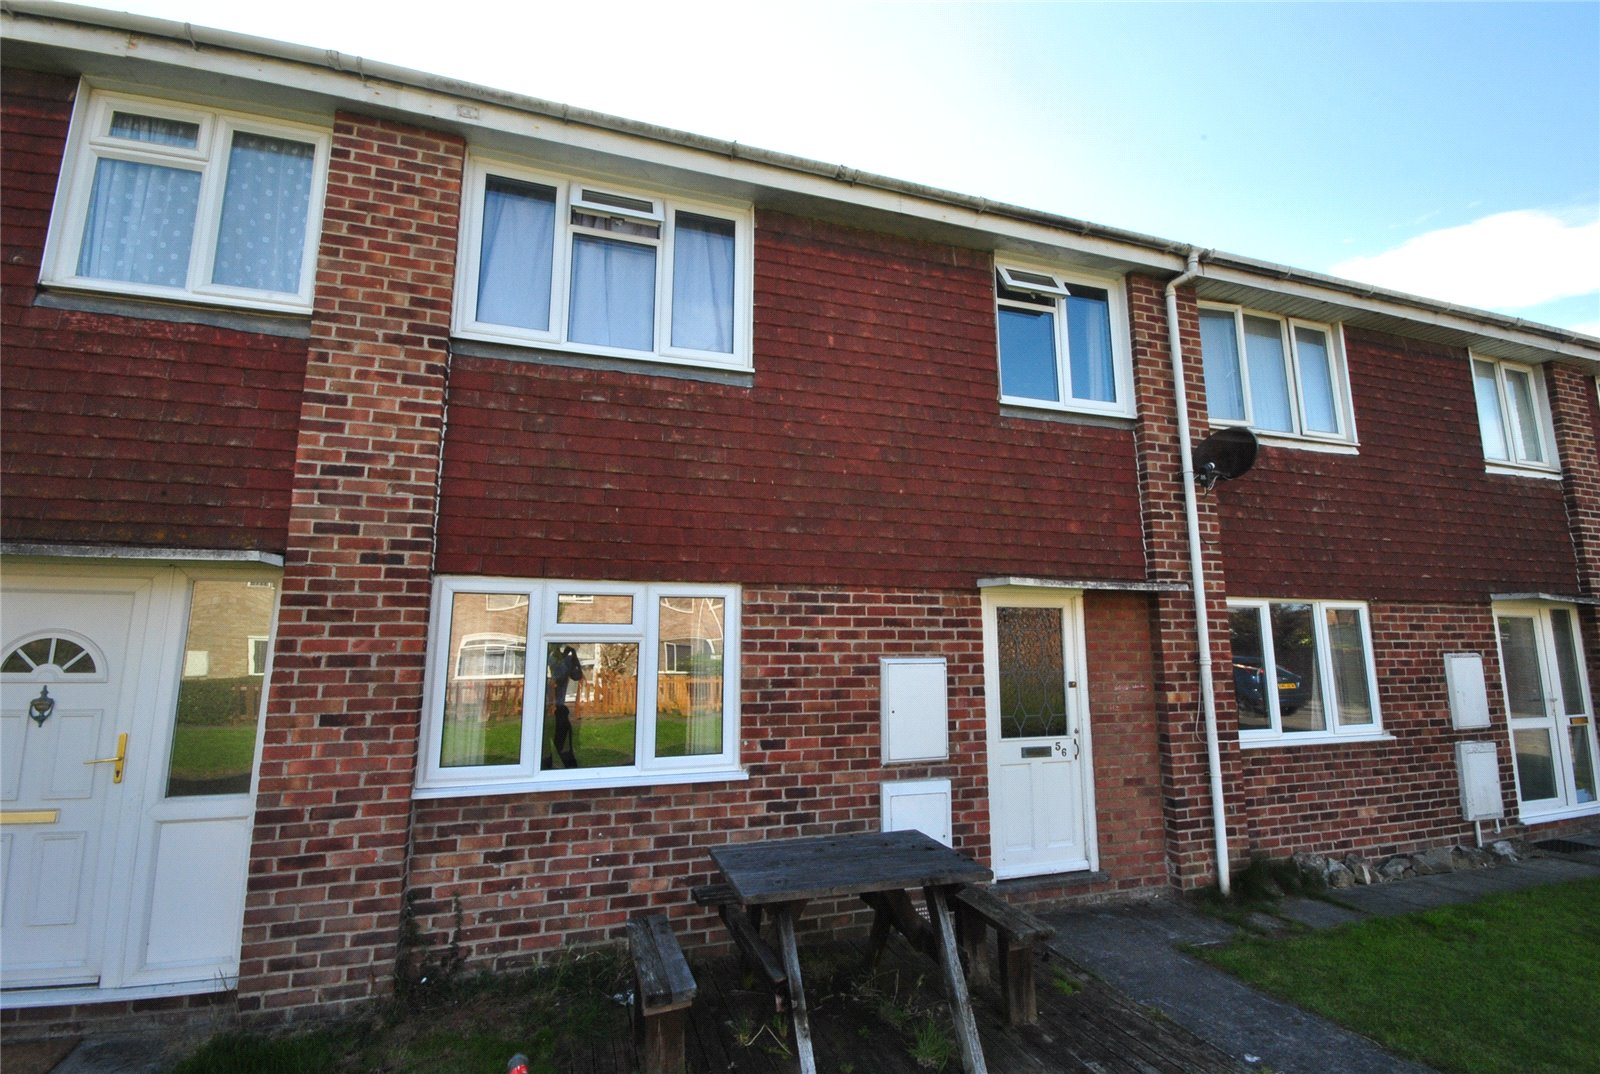 3 Bedrooms Terraced House for sale in Blackthorn Gardens Worle Weston-super-Mare BS22